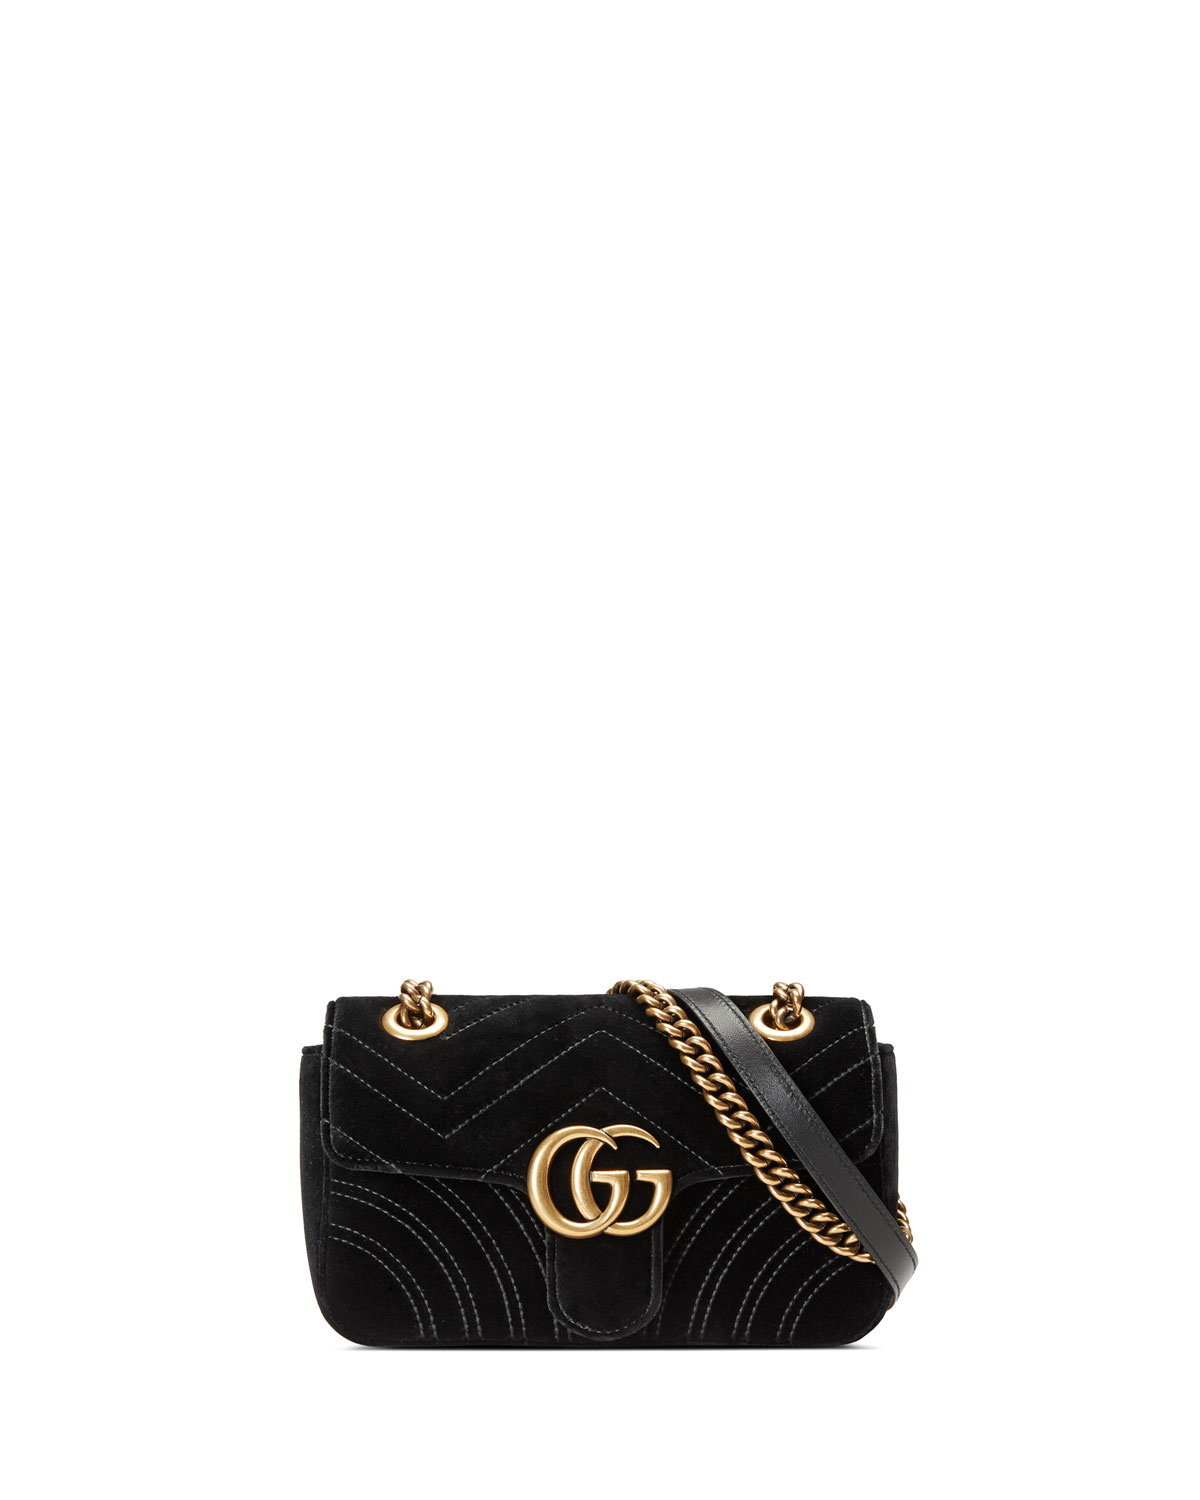 0baa19c6c Gucci GG Marmont Mini Quilted Velvet Crossbody Bag, Black | Neiman ...